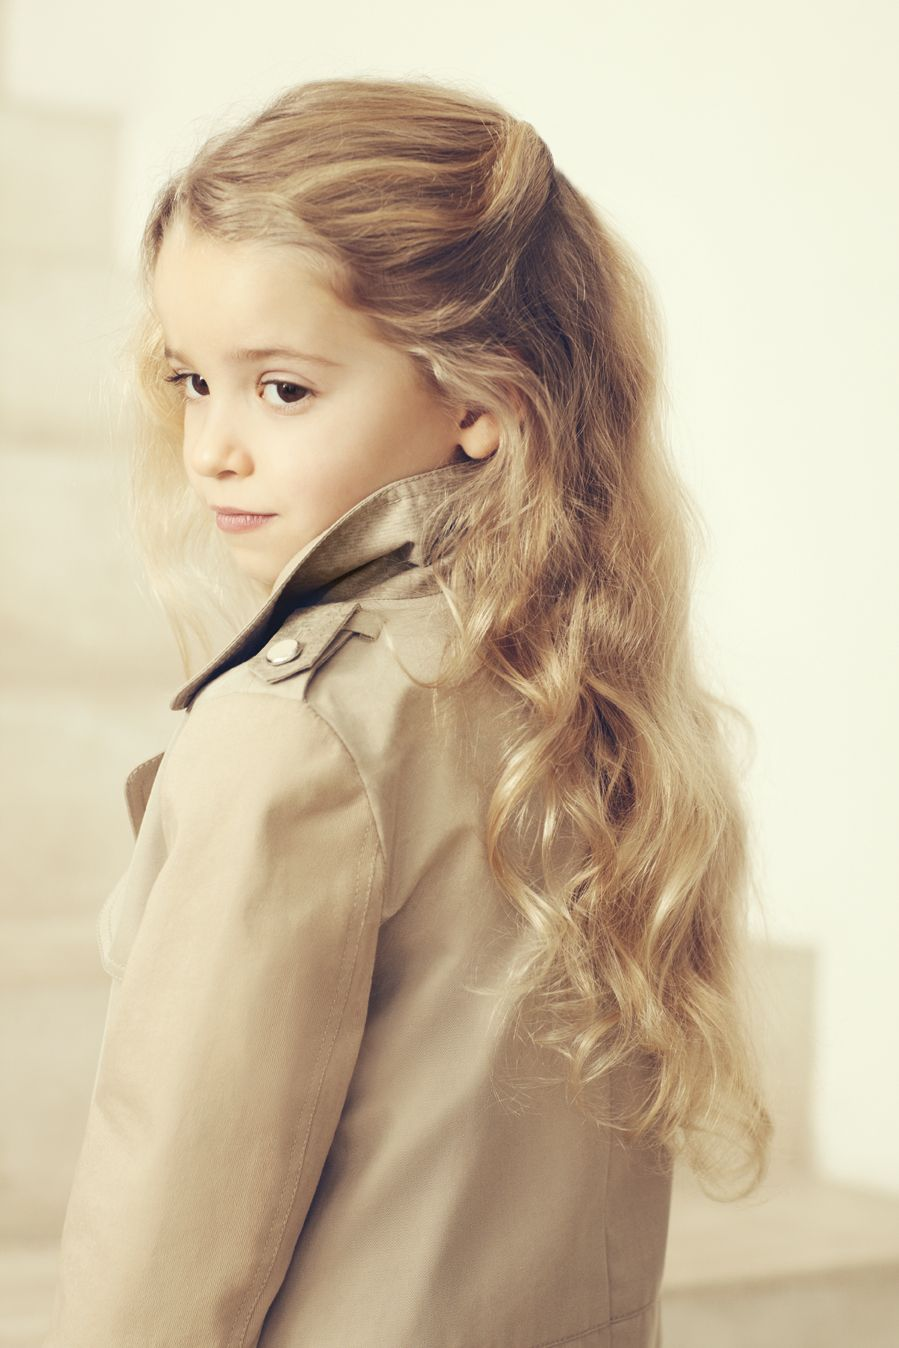 Chloe winter cool classic tailoring in neutral tones for kids